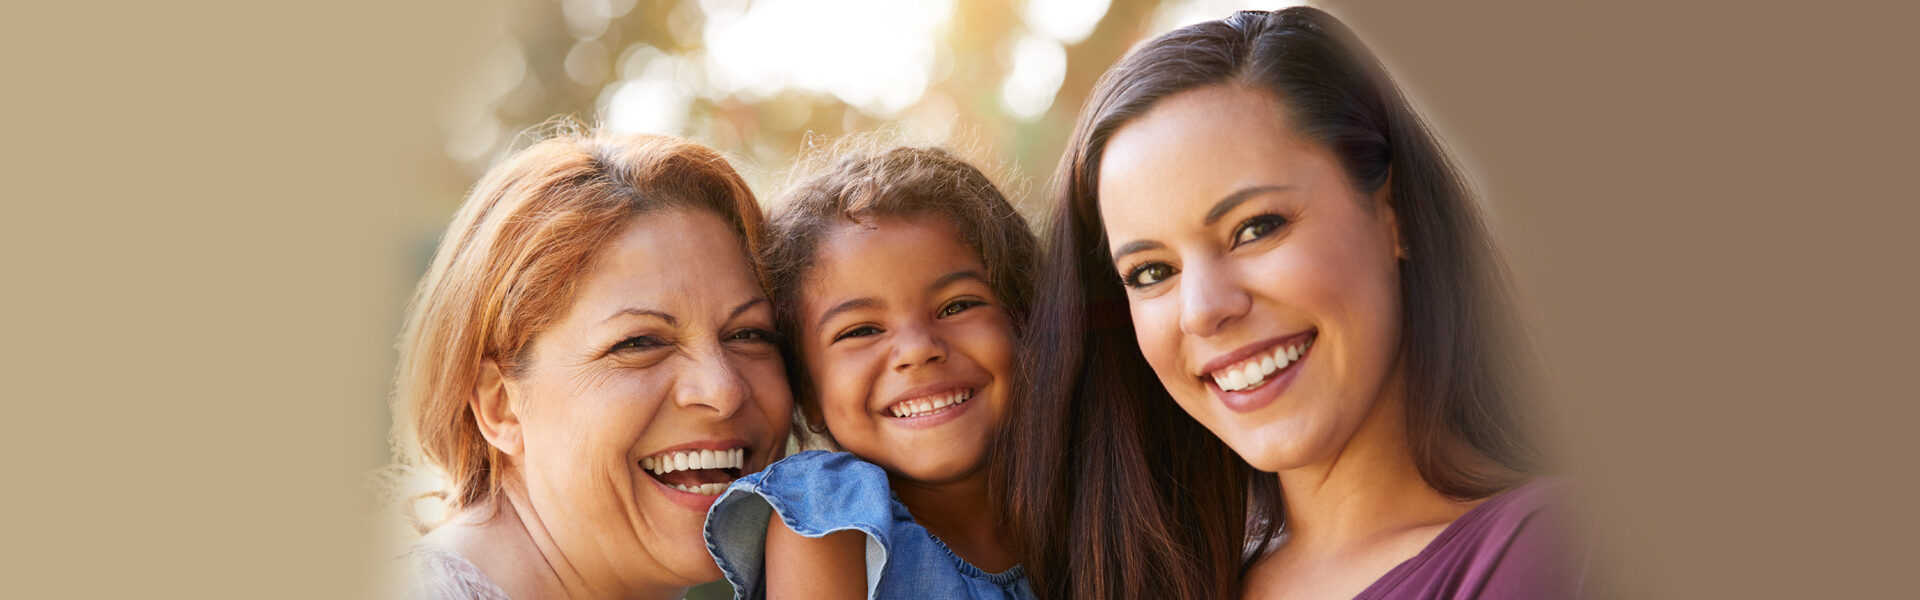 Dental Exams and Cleanings in East York, Toronto, ON